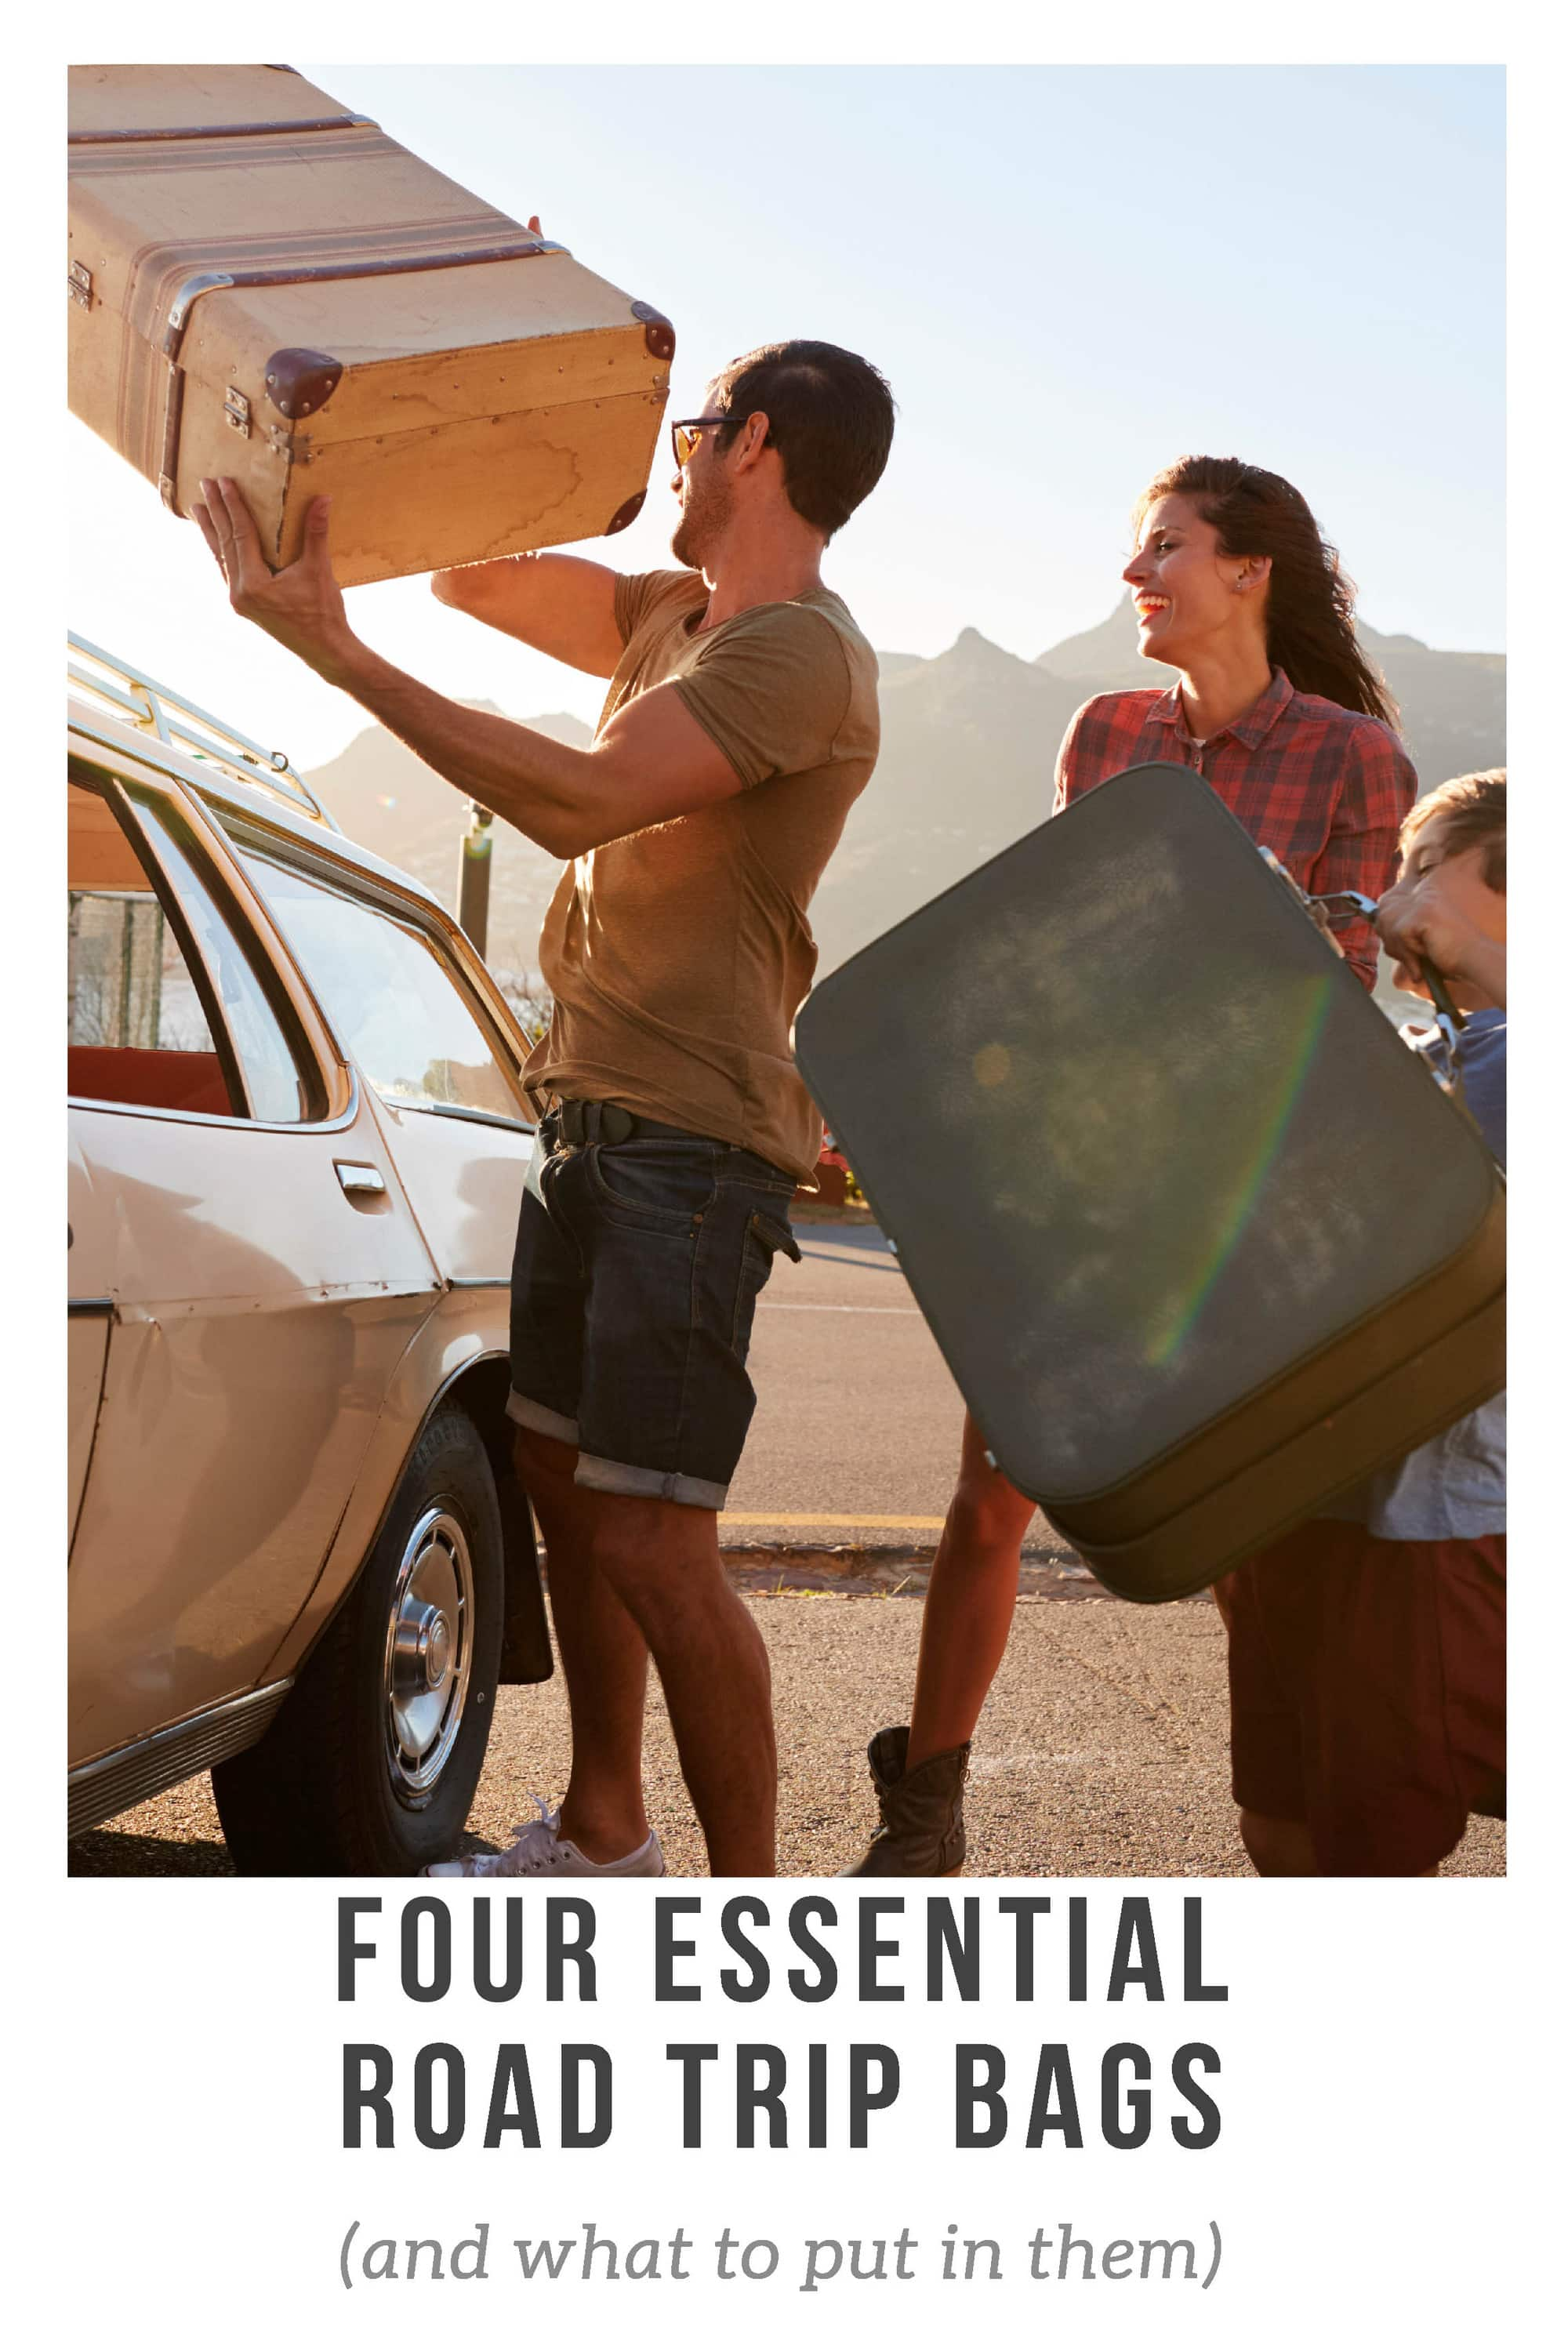 Four essential road trip bags every traveler should have in their car. Here's what they are, ideas for what to put in them, and tips on where to keep them. These bags road trip packing essentials and organization hacks for anyone planning a road trip, whether driving cross country or spending a weekend in the next city - perfect for adults, families, kids, or couples. #RoadTripPacking #RoadTripPackingHacks #RoadTripPackingTips #RoadTripPackingEssentials  #RoadTripPlanning #RoadTripEssentials